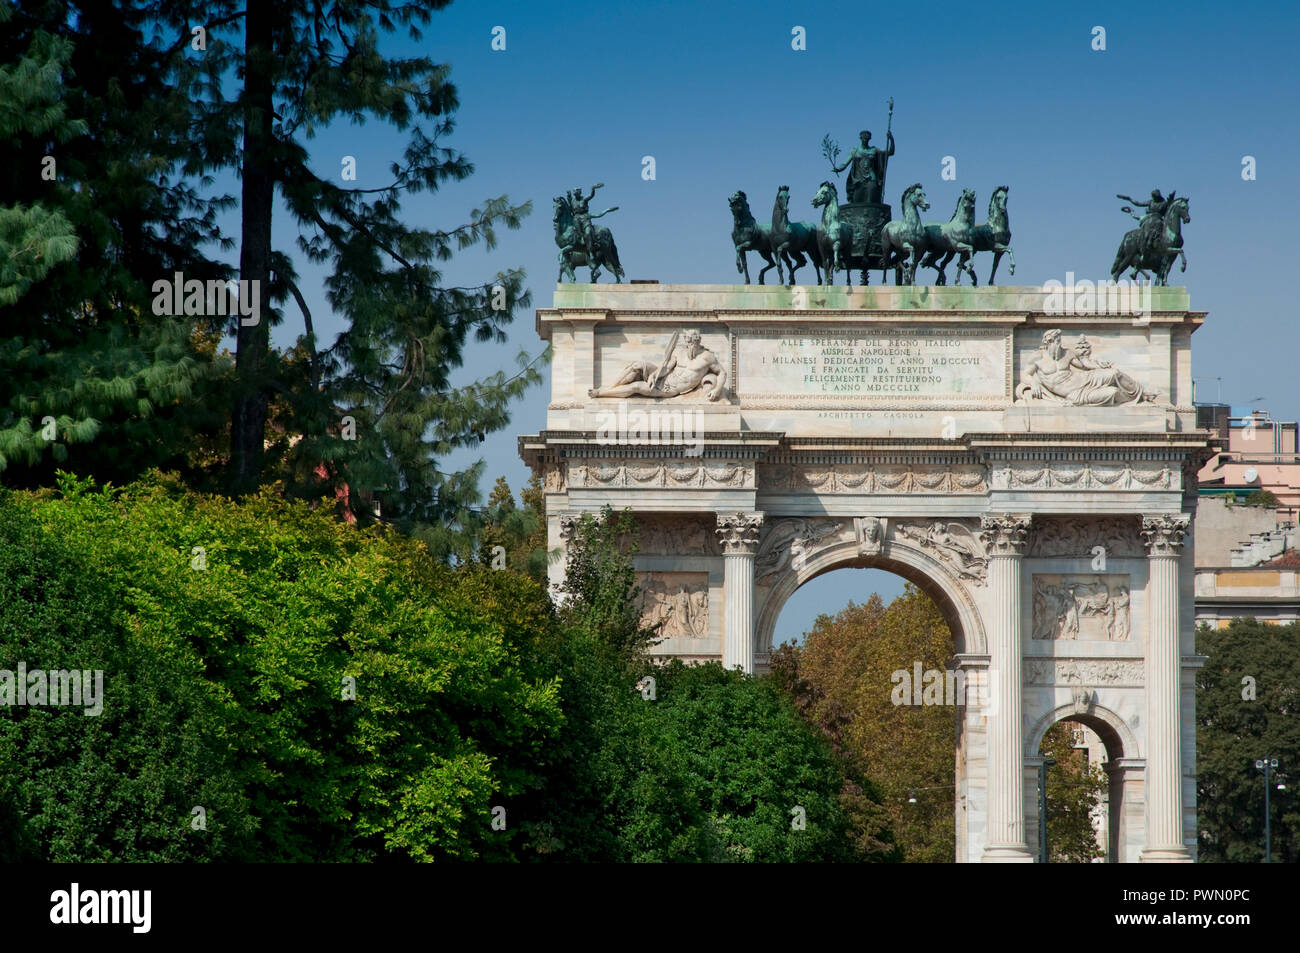 Italy, Lombardy, Milan, Arco della Pace, Arch of Peace, Triumphal Arch by Luigi Cagnola - Stock Image